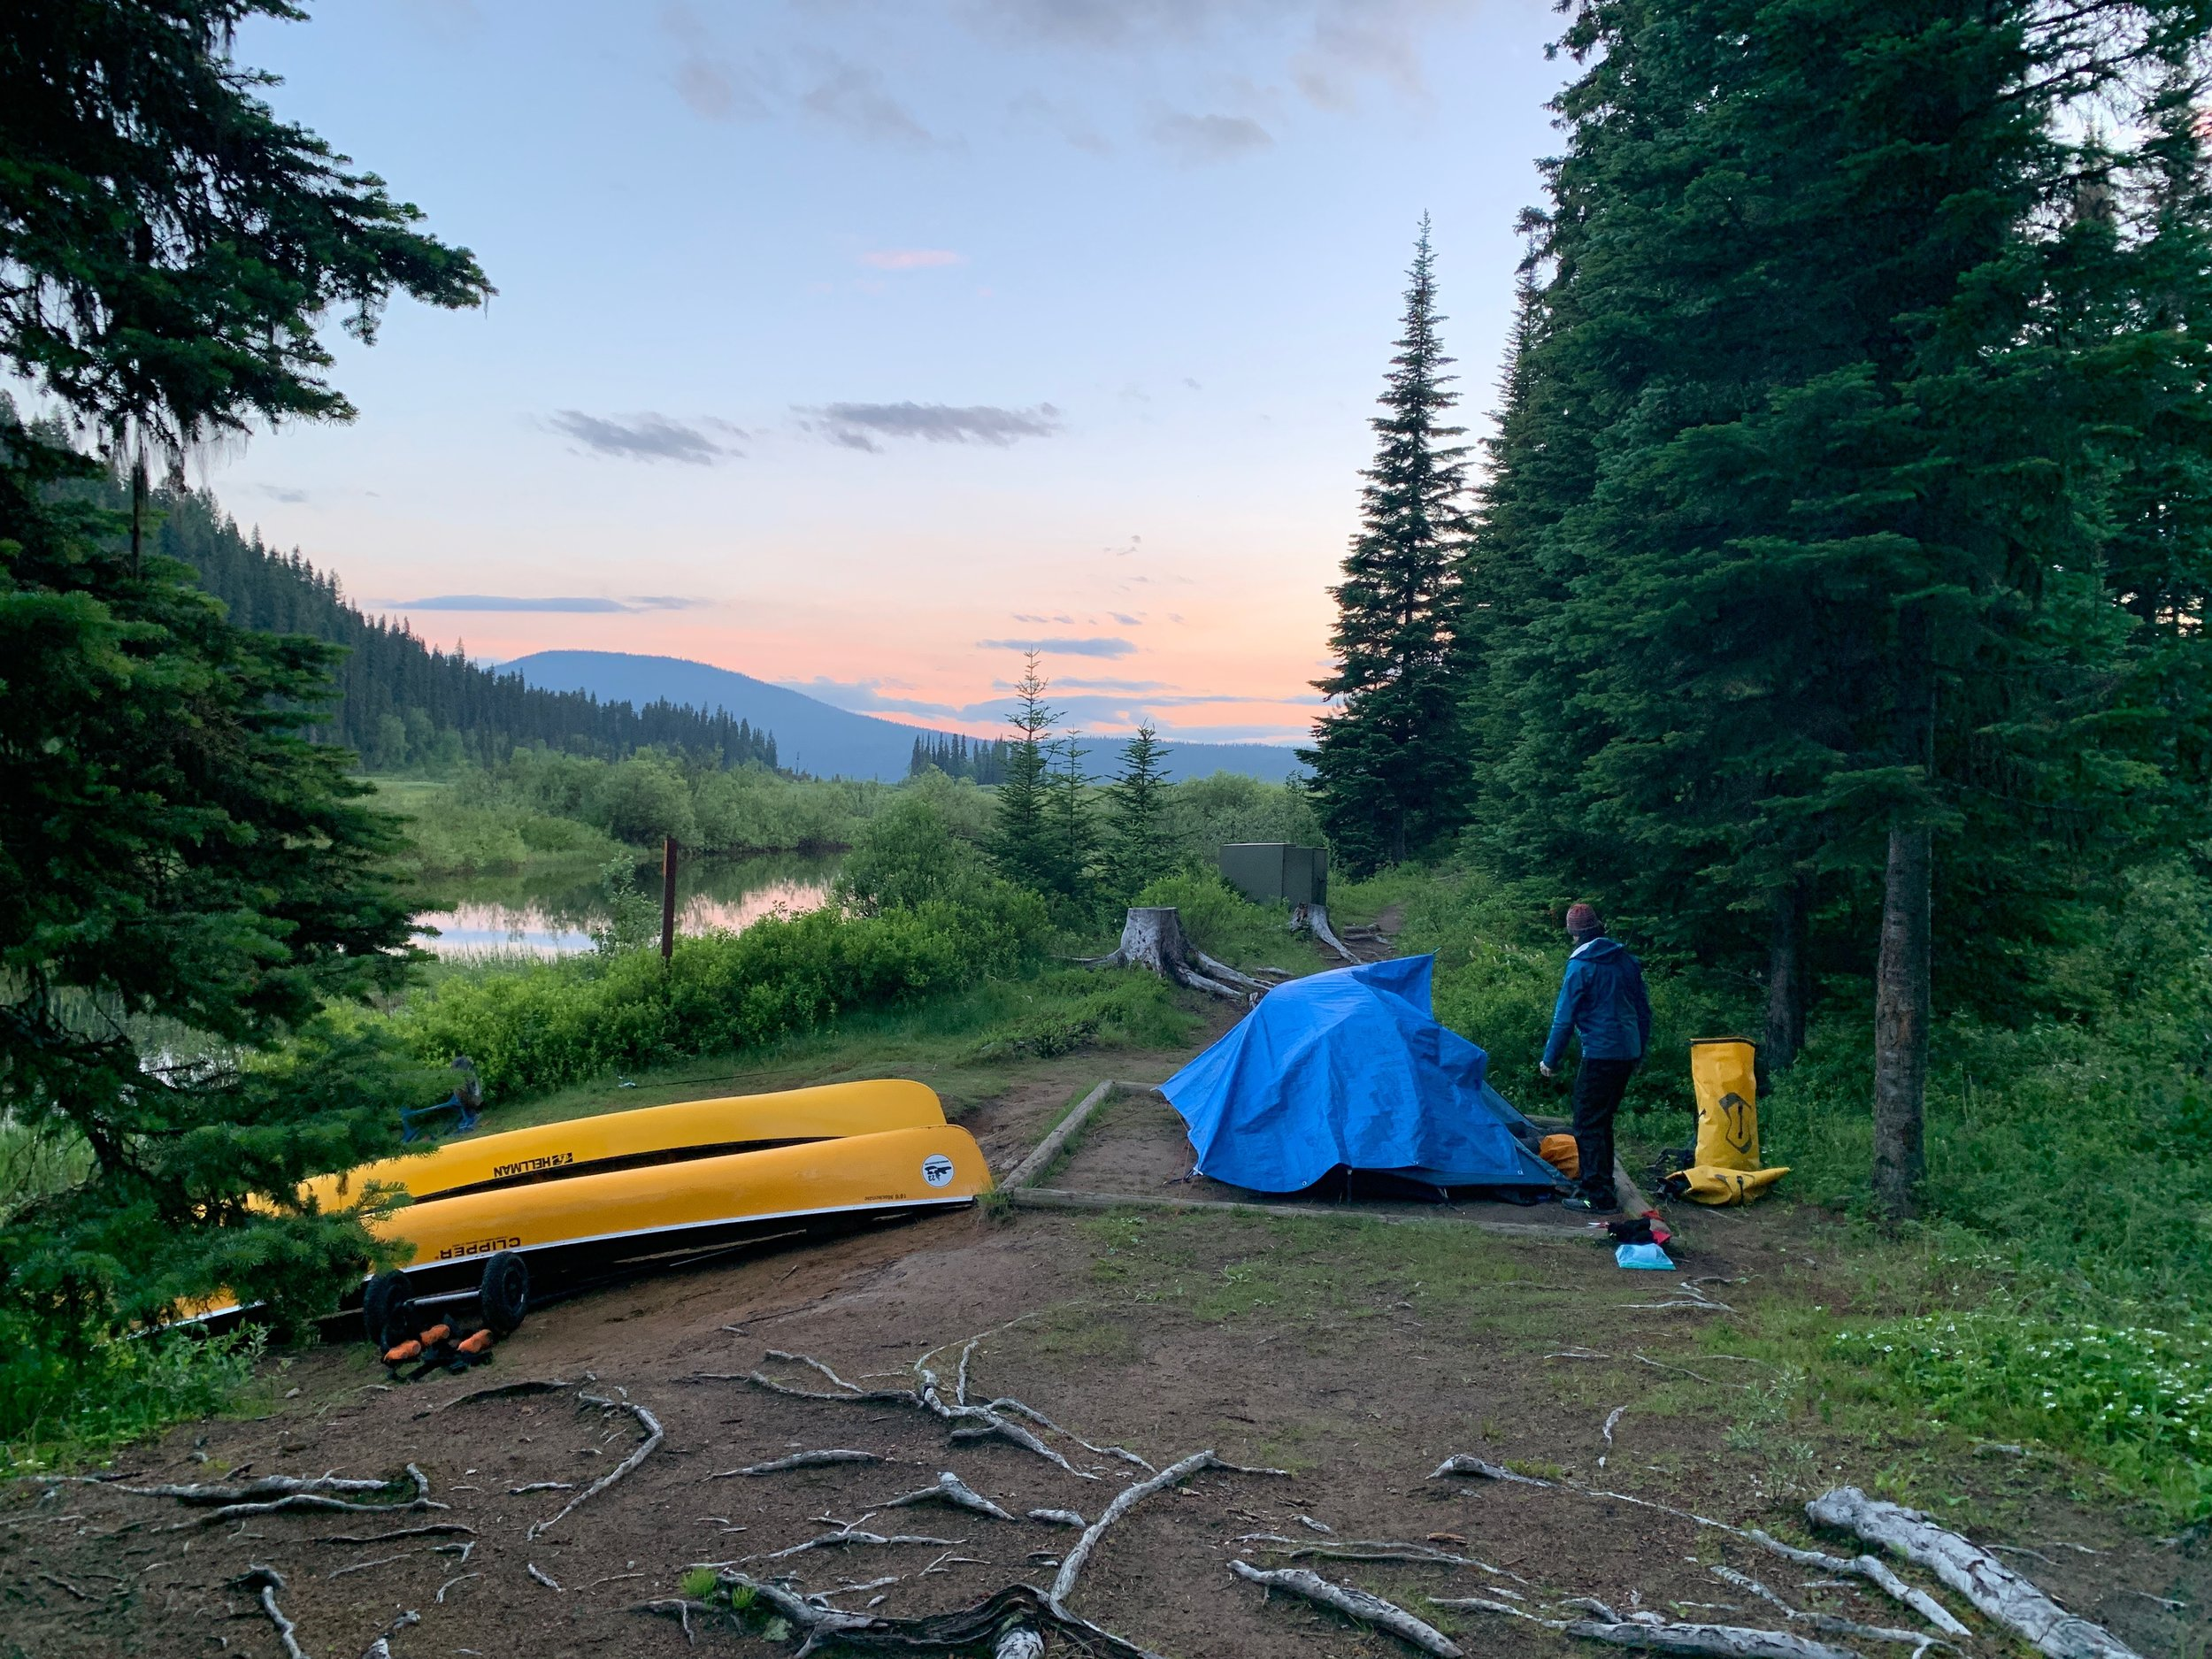 Our final campsite on the Bowron Lakes Circuit